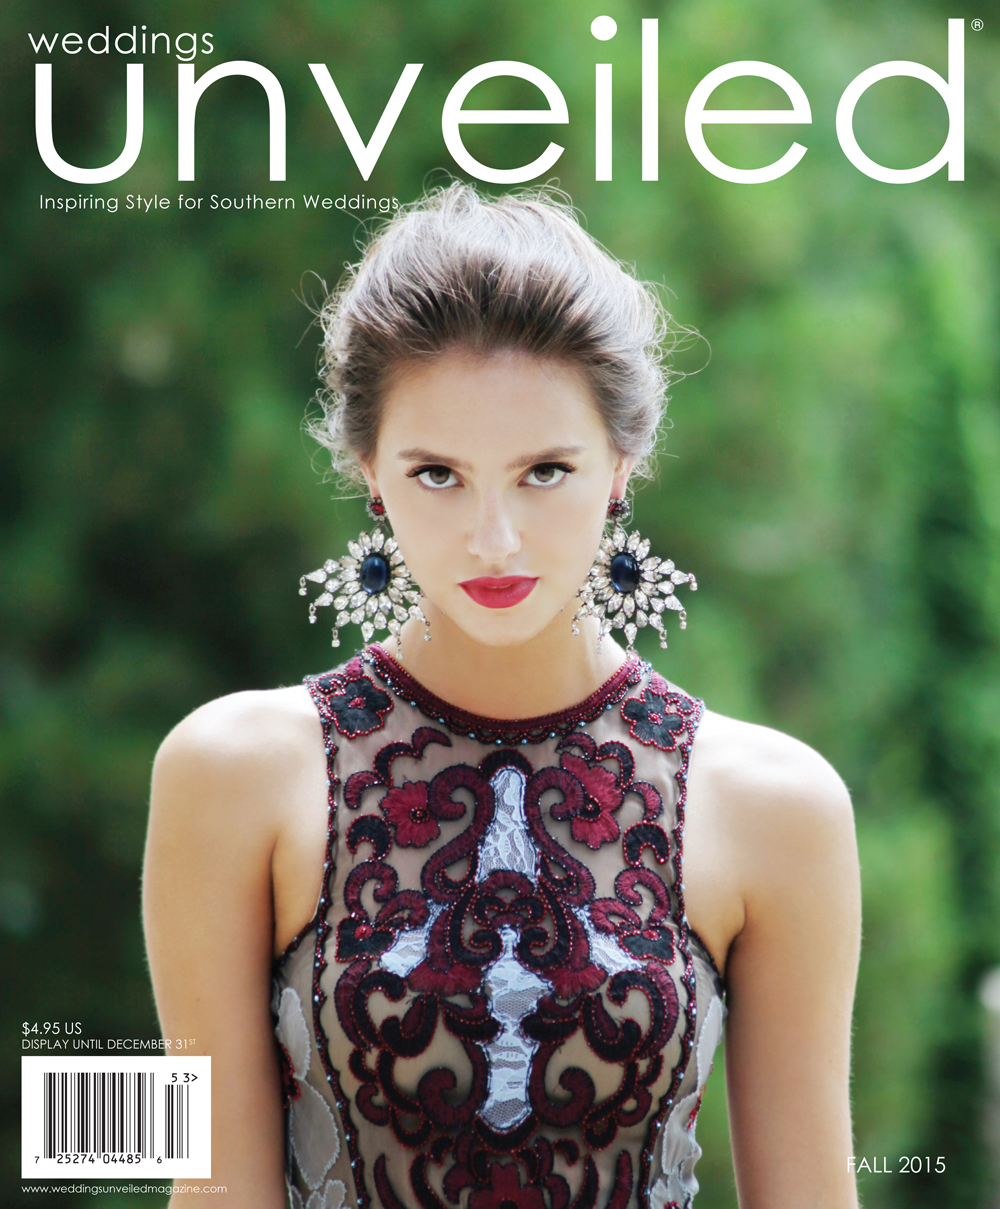 Weddings-Unveiled-Fall-2015-Cover.jpg